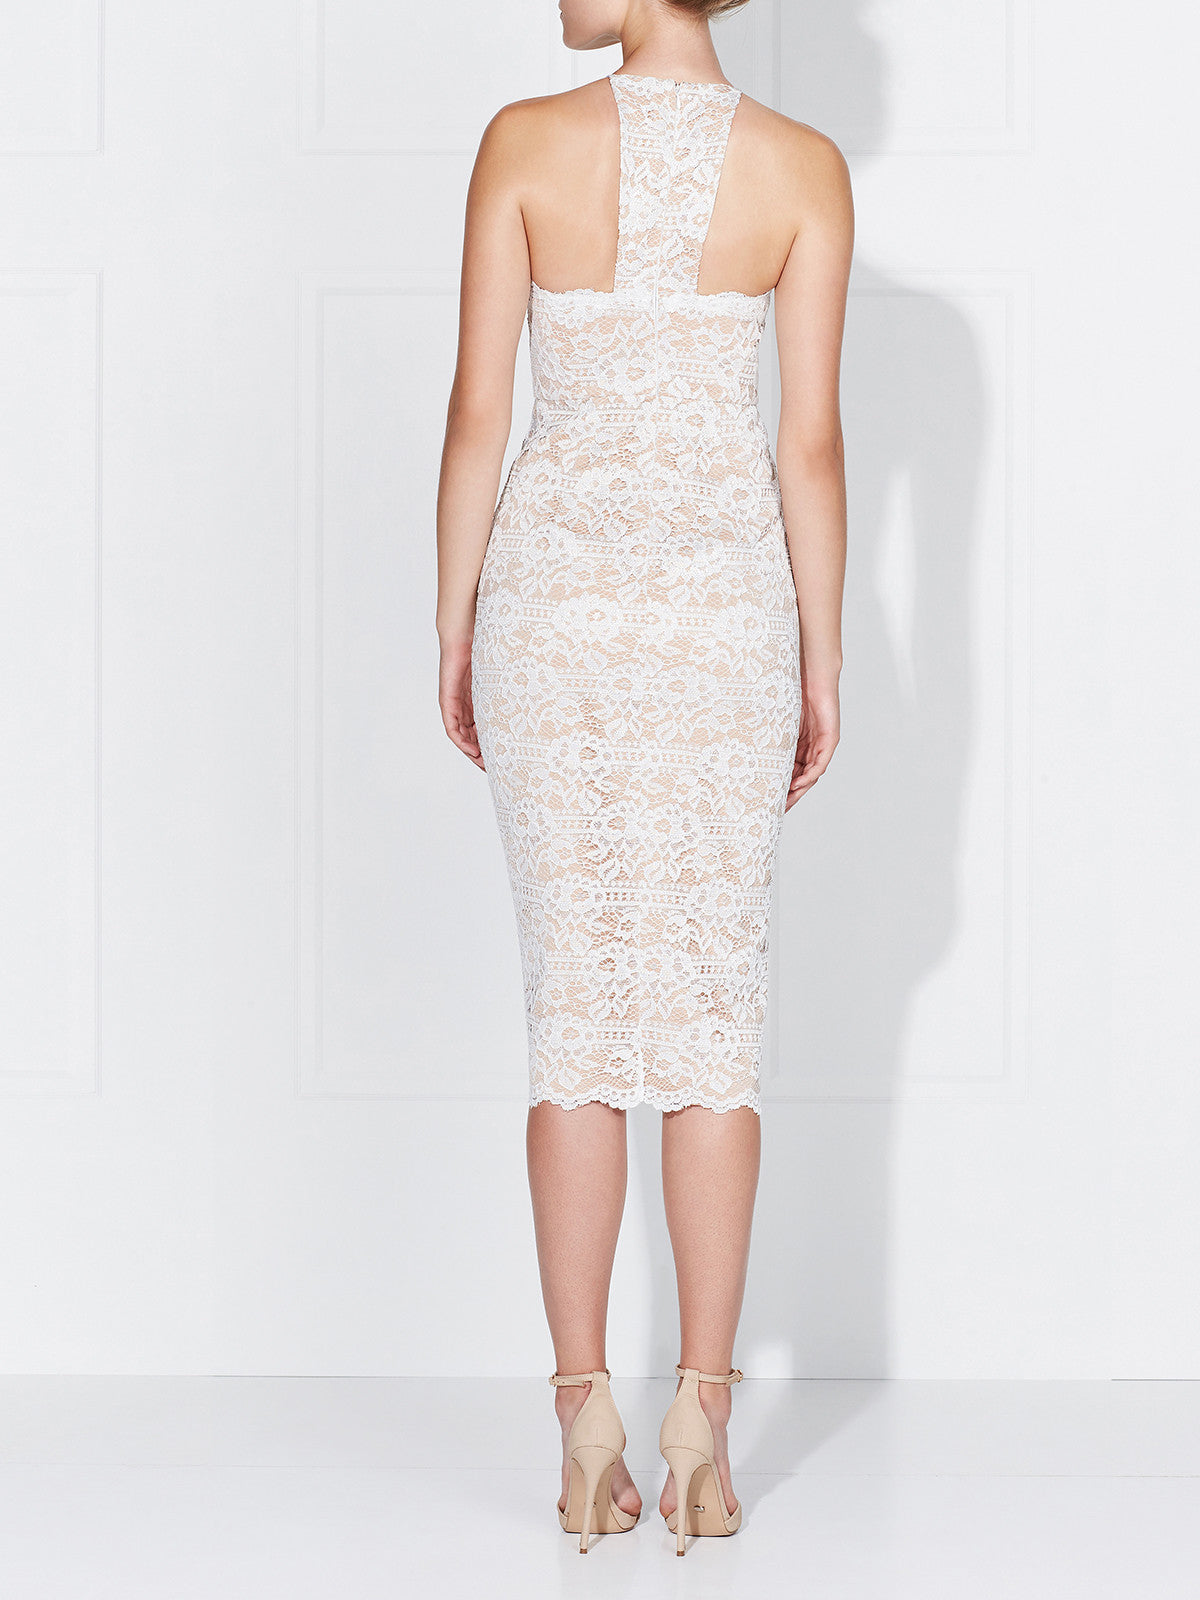 LENA LACE DRESS- IVORY/NUDE